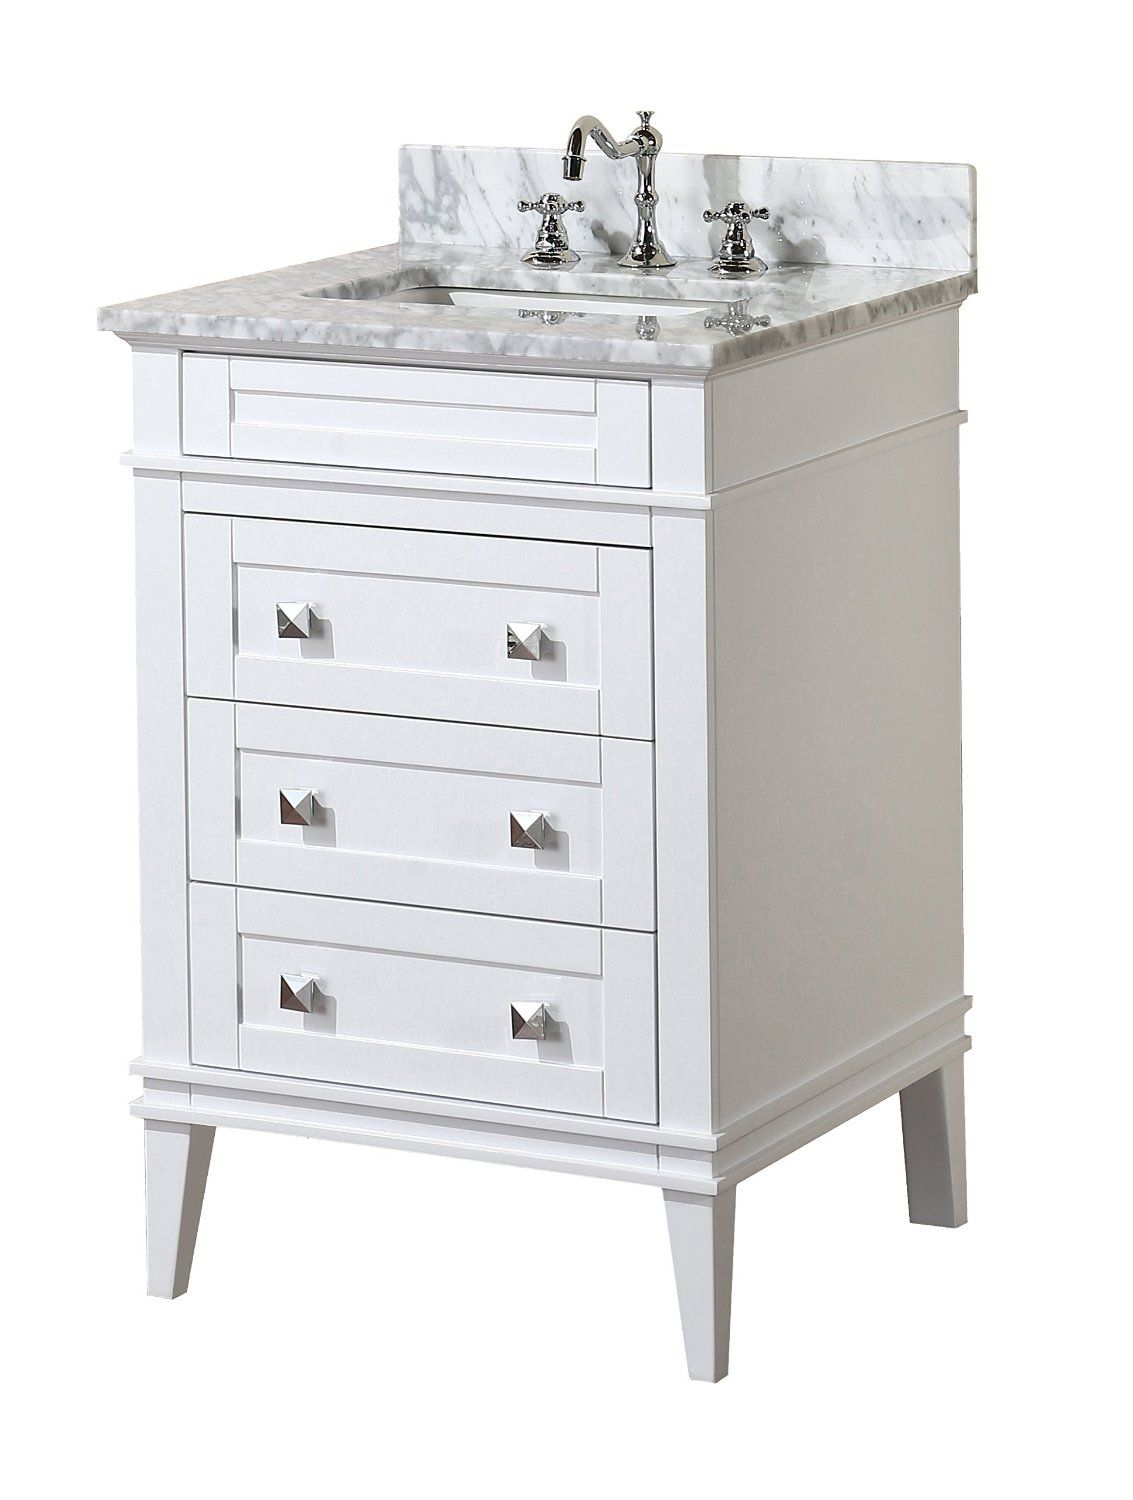 Eleanor 24 Inch Bathroom Vanity Carrara White Includes A Cabinet Soft Close Drawers Natural Italian Marble Countertop And Ceramic